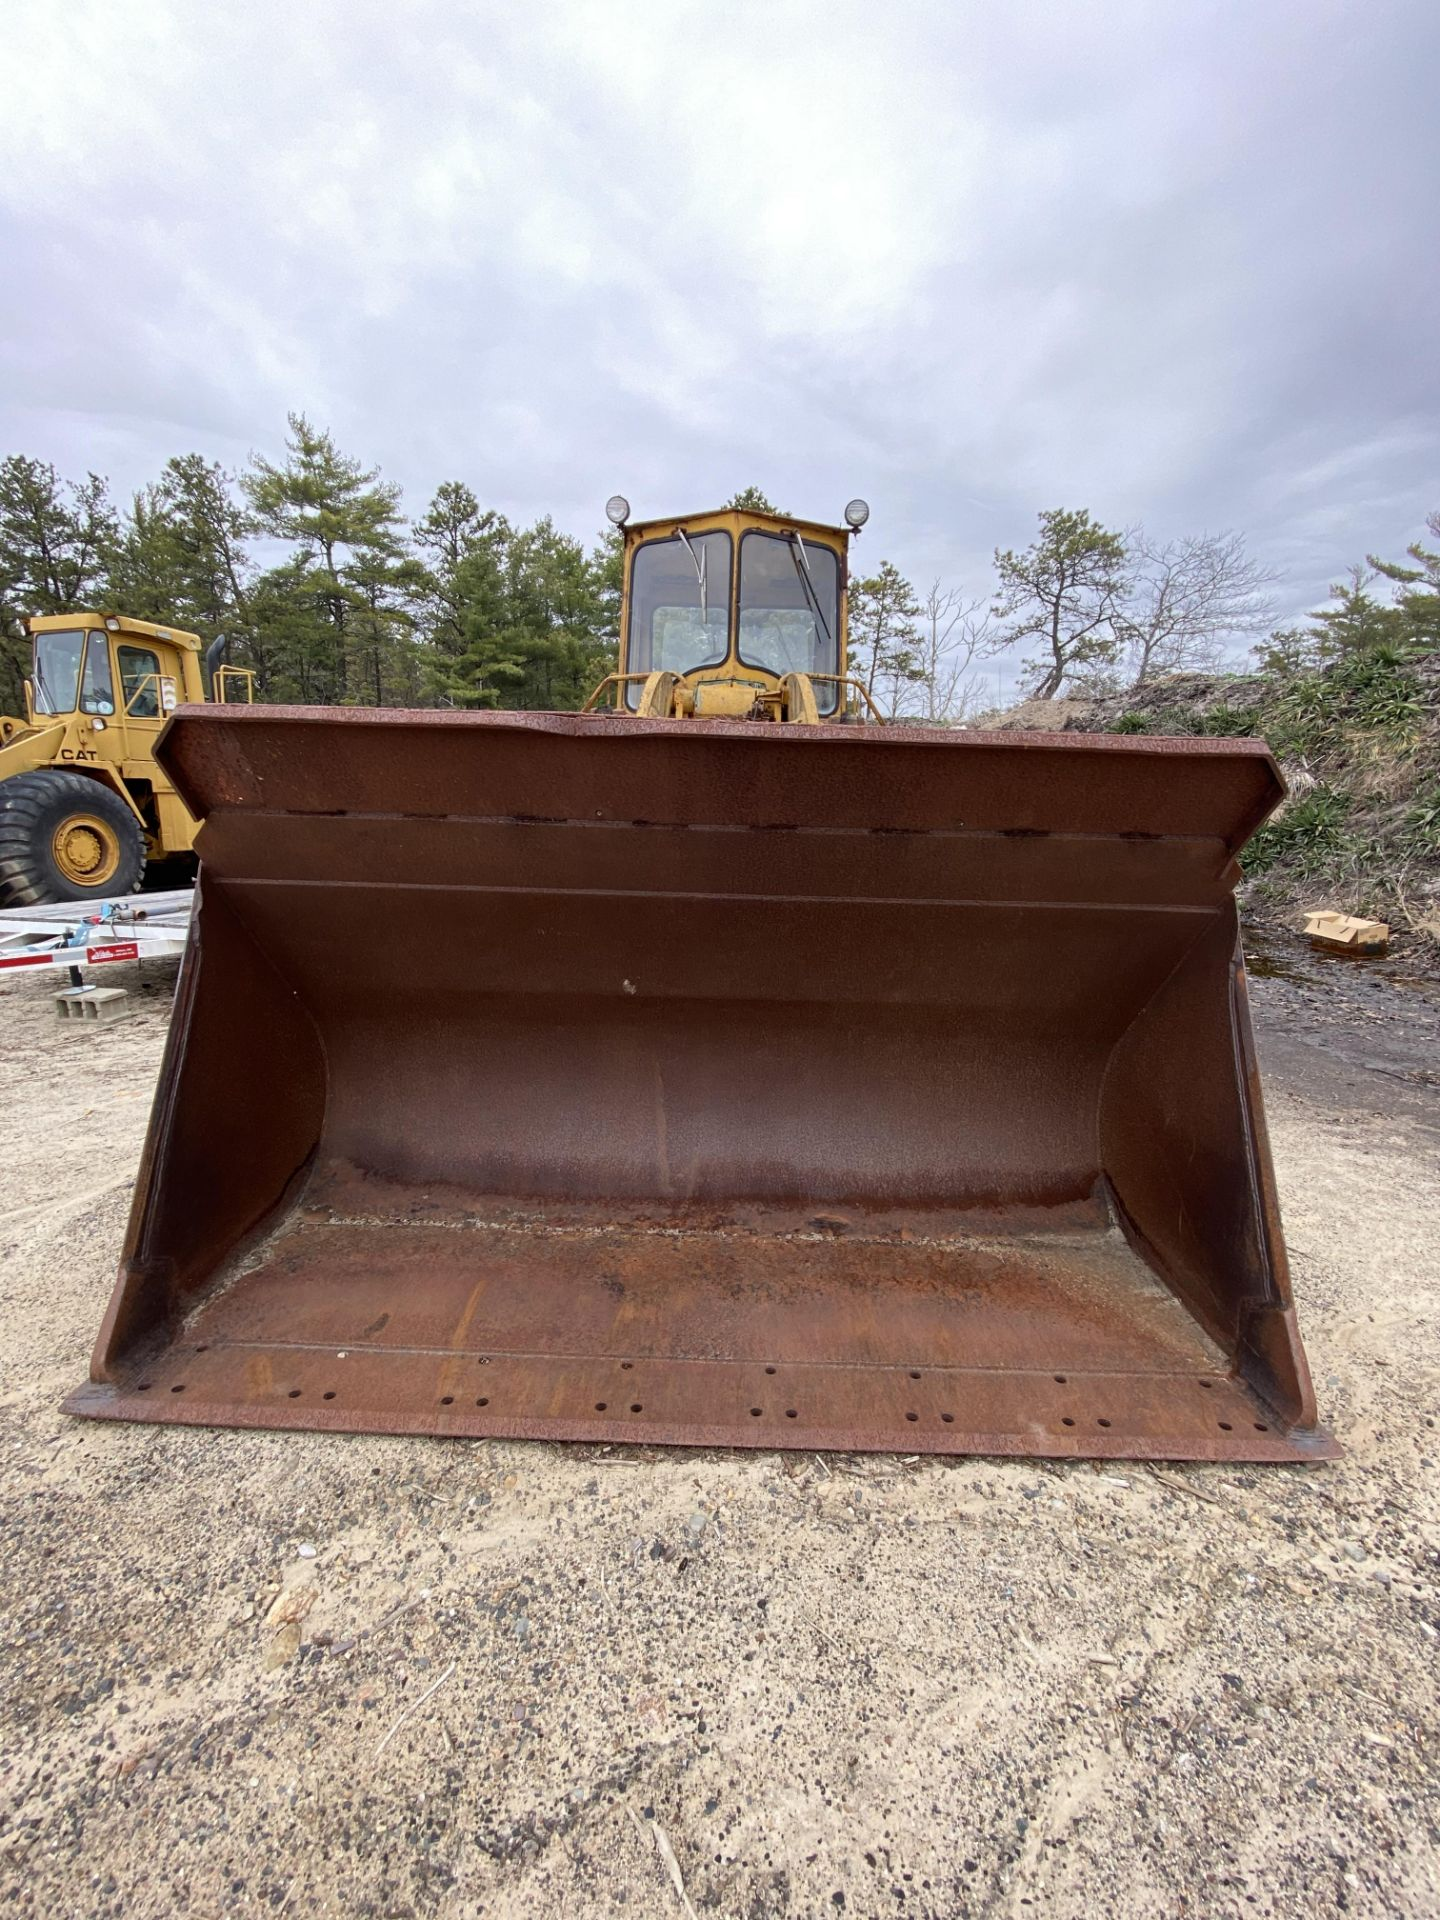 Caterpillar 966B Wheel Loader s/n 75A4794, No Title - Image 14 of 16